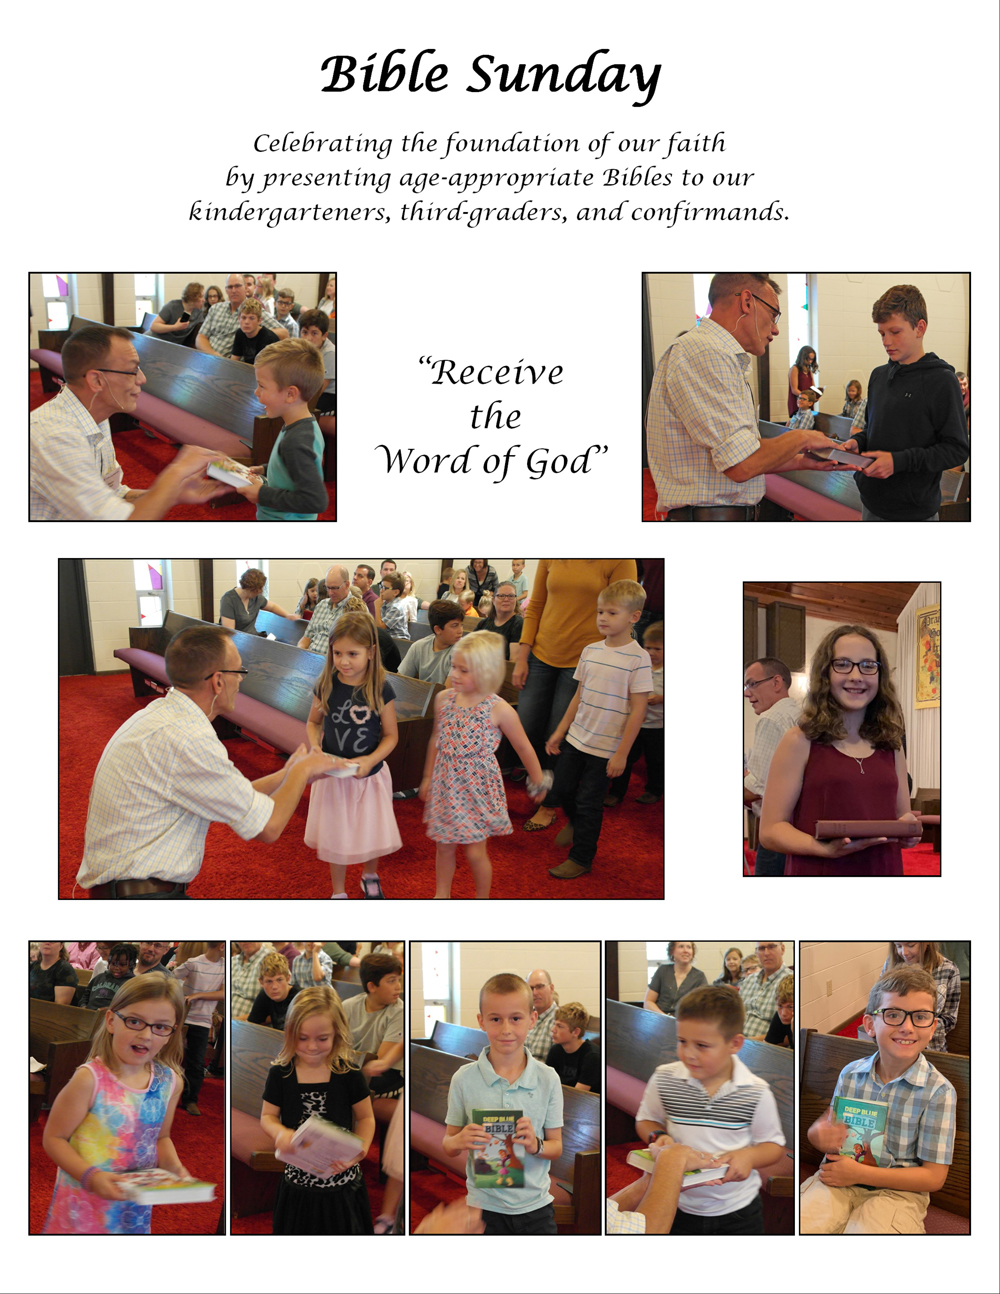 Bible Sunday:  Celebrating the foundation of our faith with Bibles for our children.